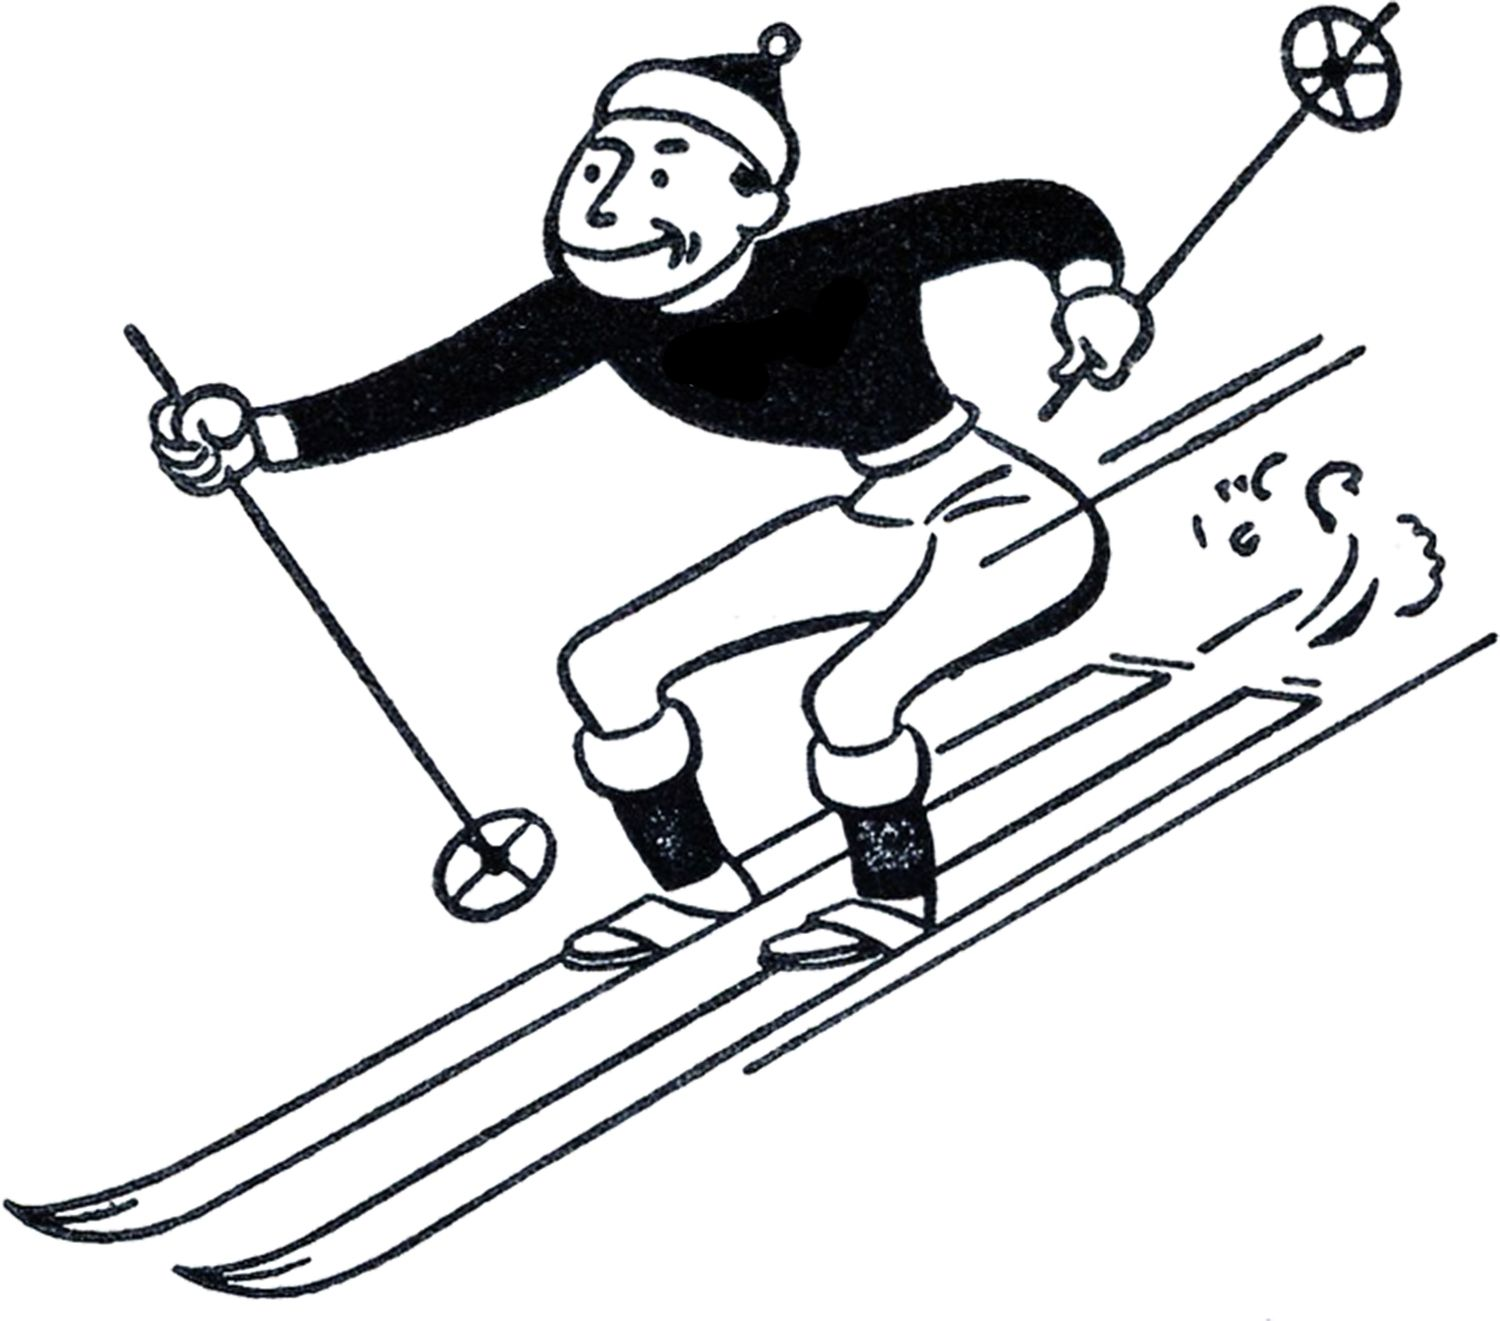 funny retro skiing clipart graphics fairy vintage images and rh pinterest co uk ski clipart black and white ski clipart black and white